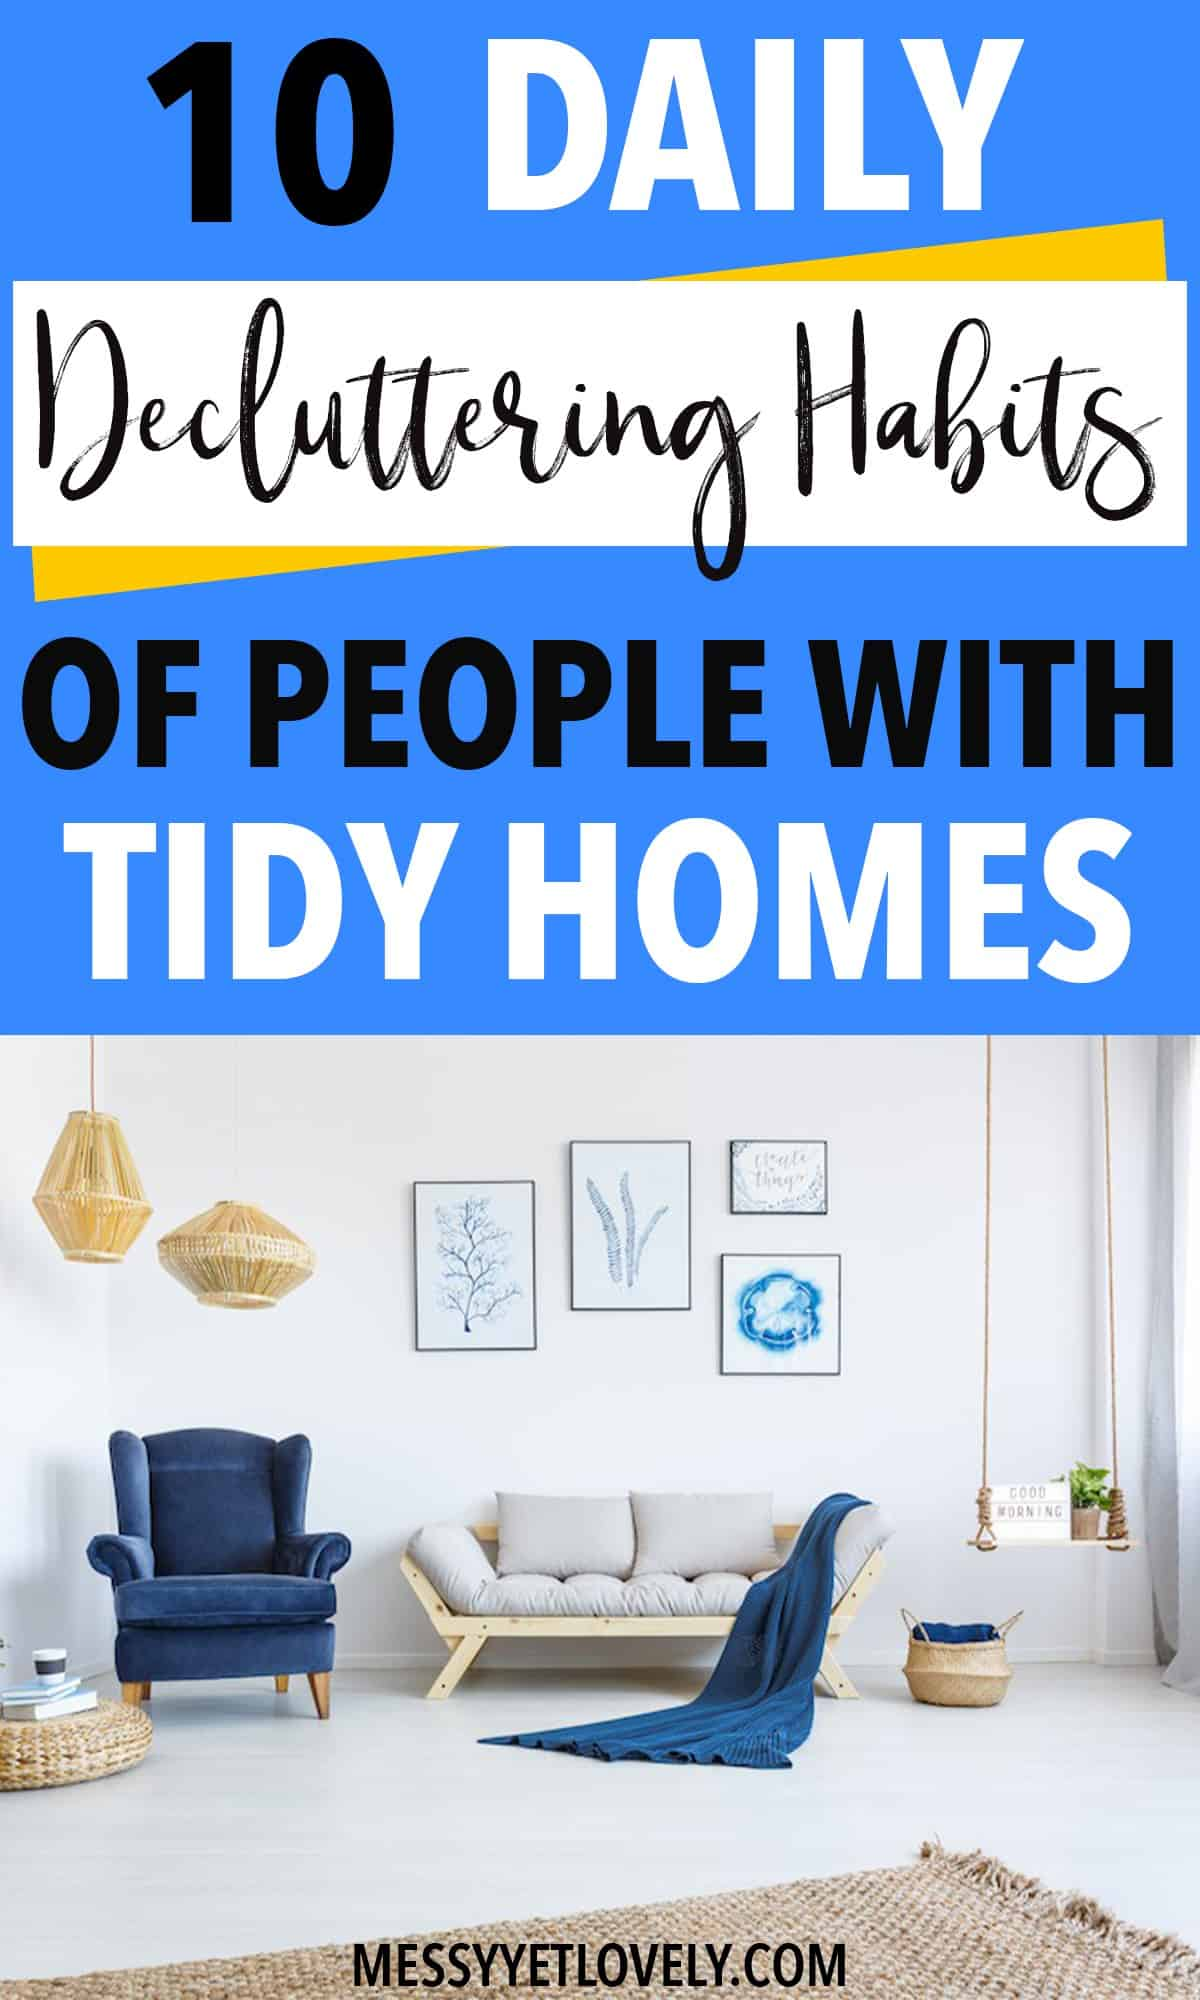 Do you wish if there was an easy way to keep your house uncluttered and look neat? How you tidy up daily has an impact on how clean your house is. Creating these daily decluttering habits will help you to reduce clutter in your home making it look always tidy. Click to know what the 10 daily decluttering habits everyone must have are.